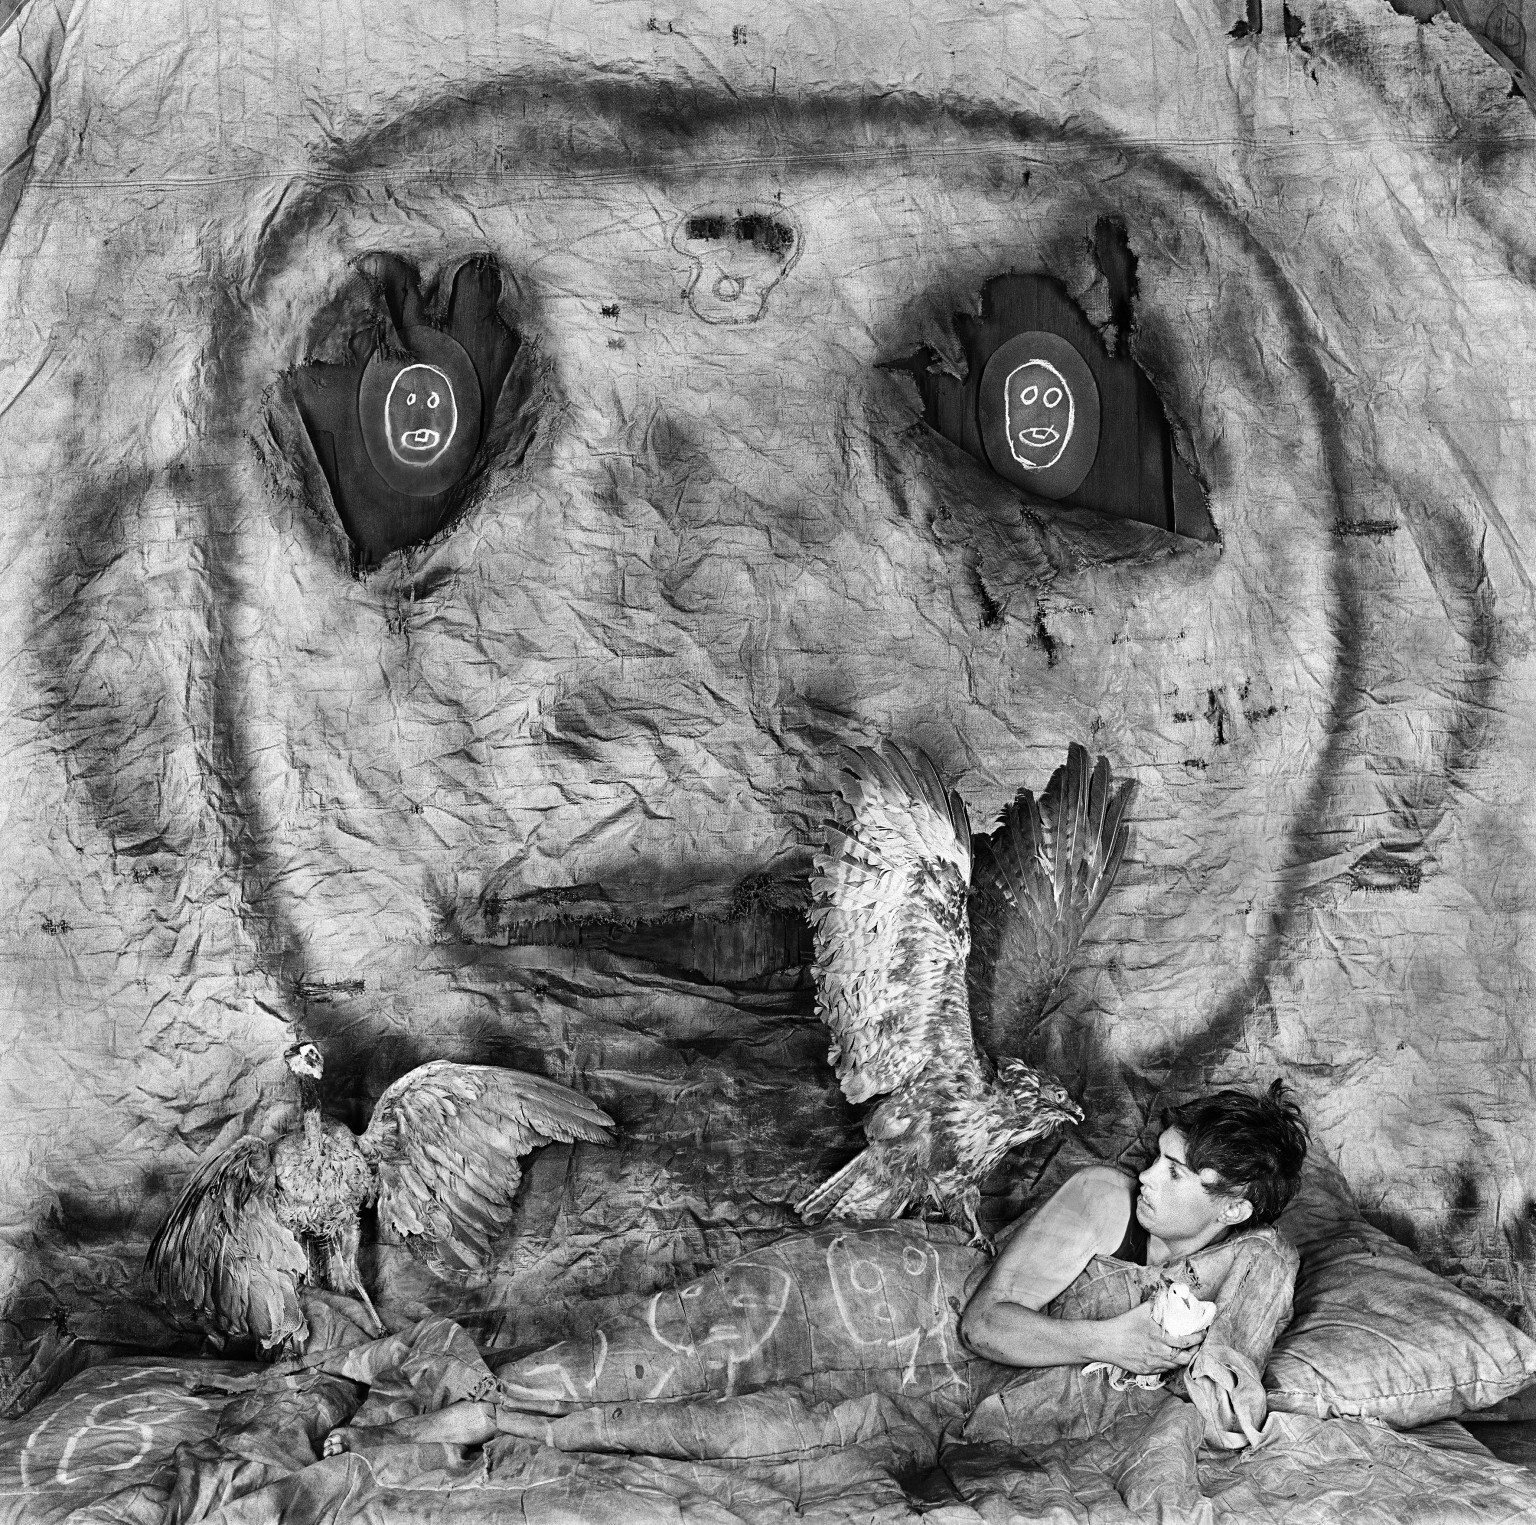 Roger Ballen Photos Reveal Surreal Visions At National